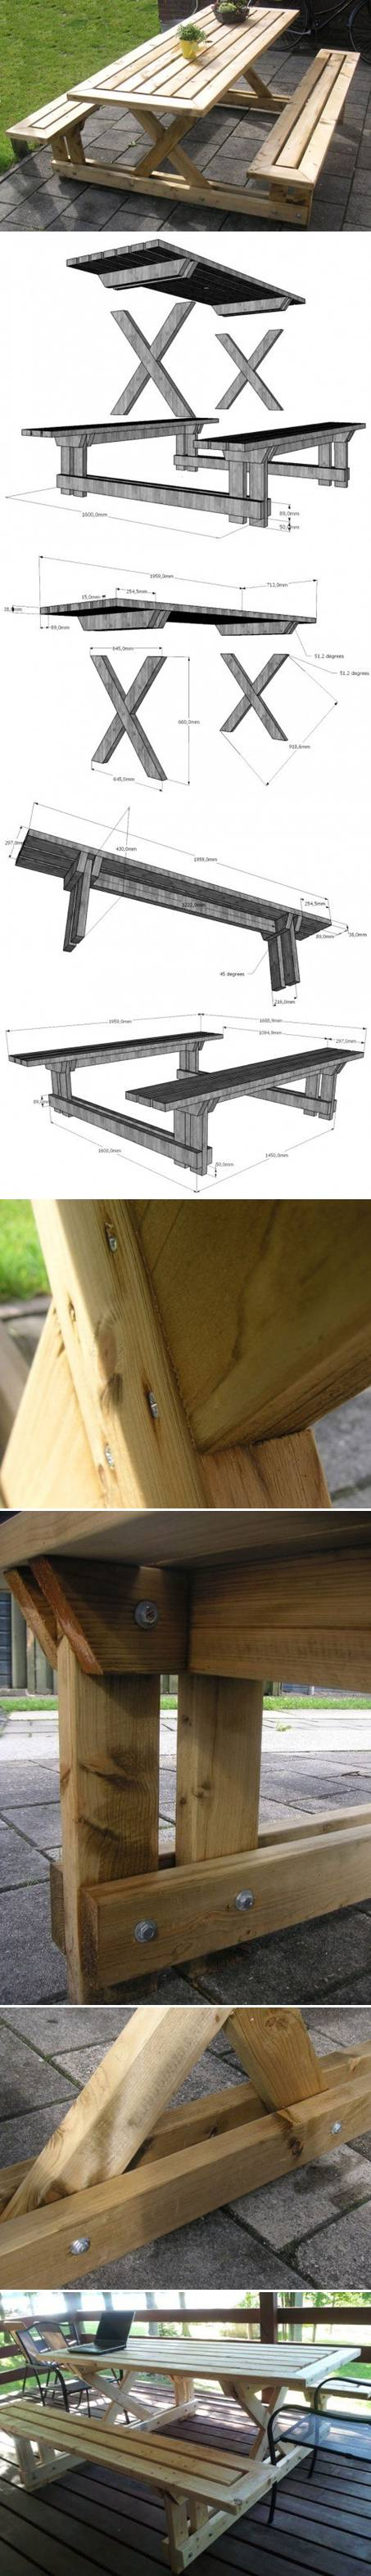 How to Make Garden Bench and Table step by step DIY tutorial instructions